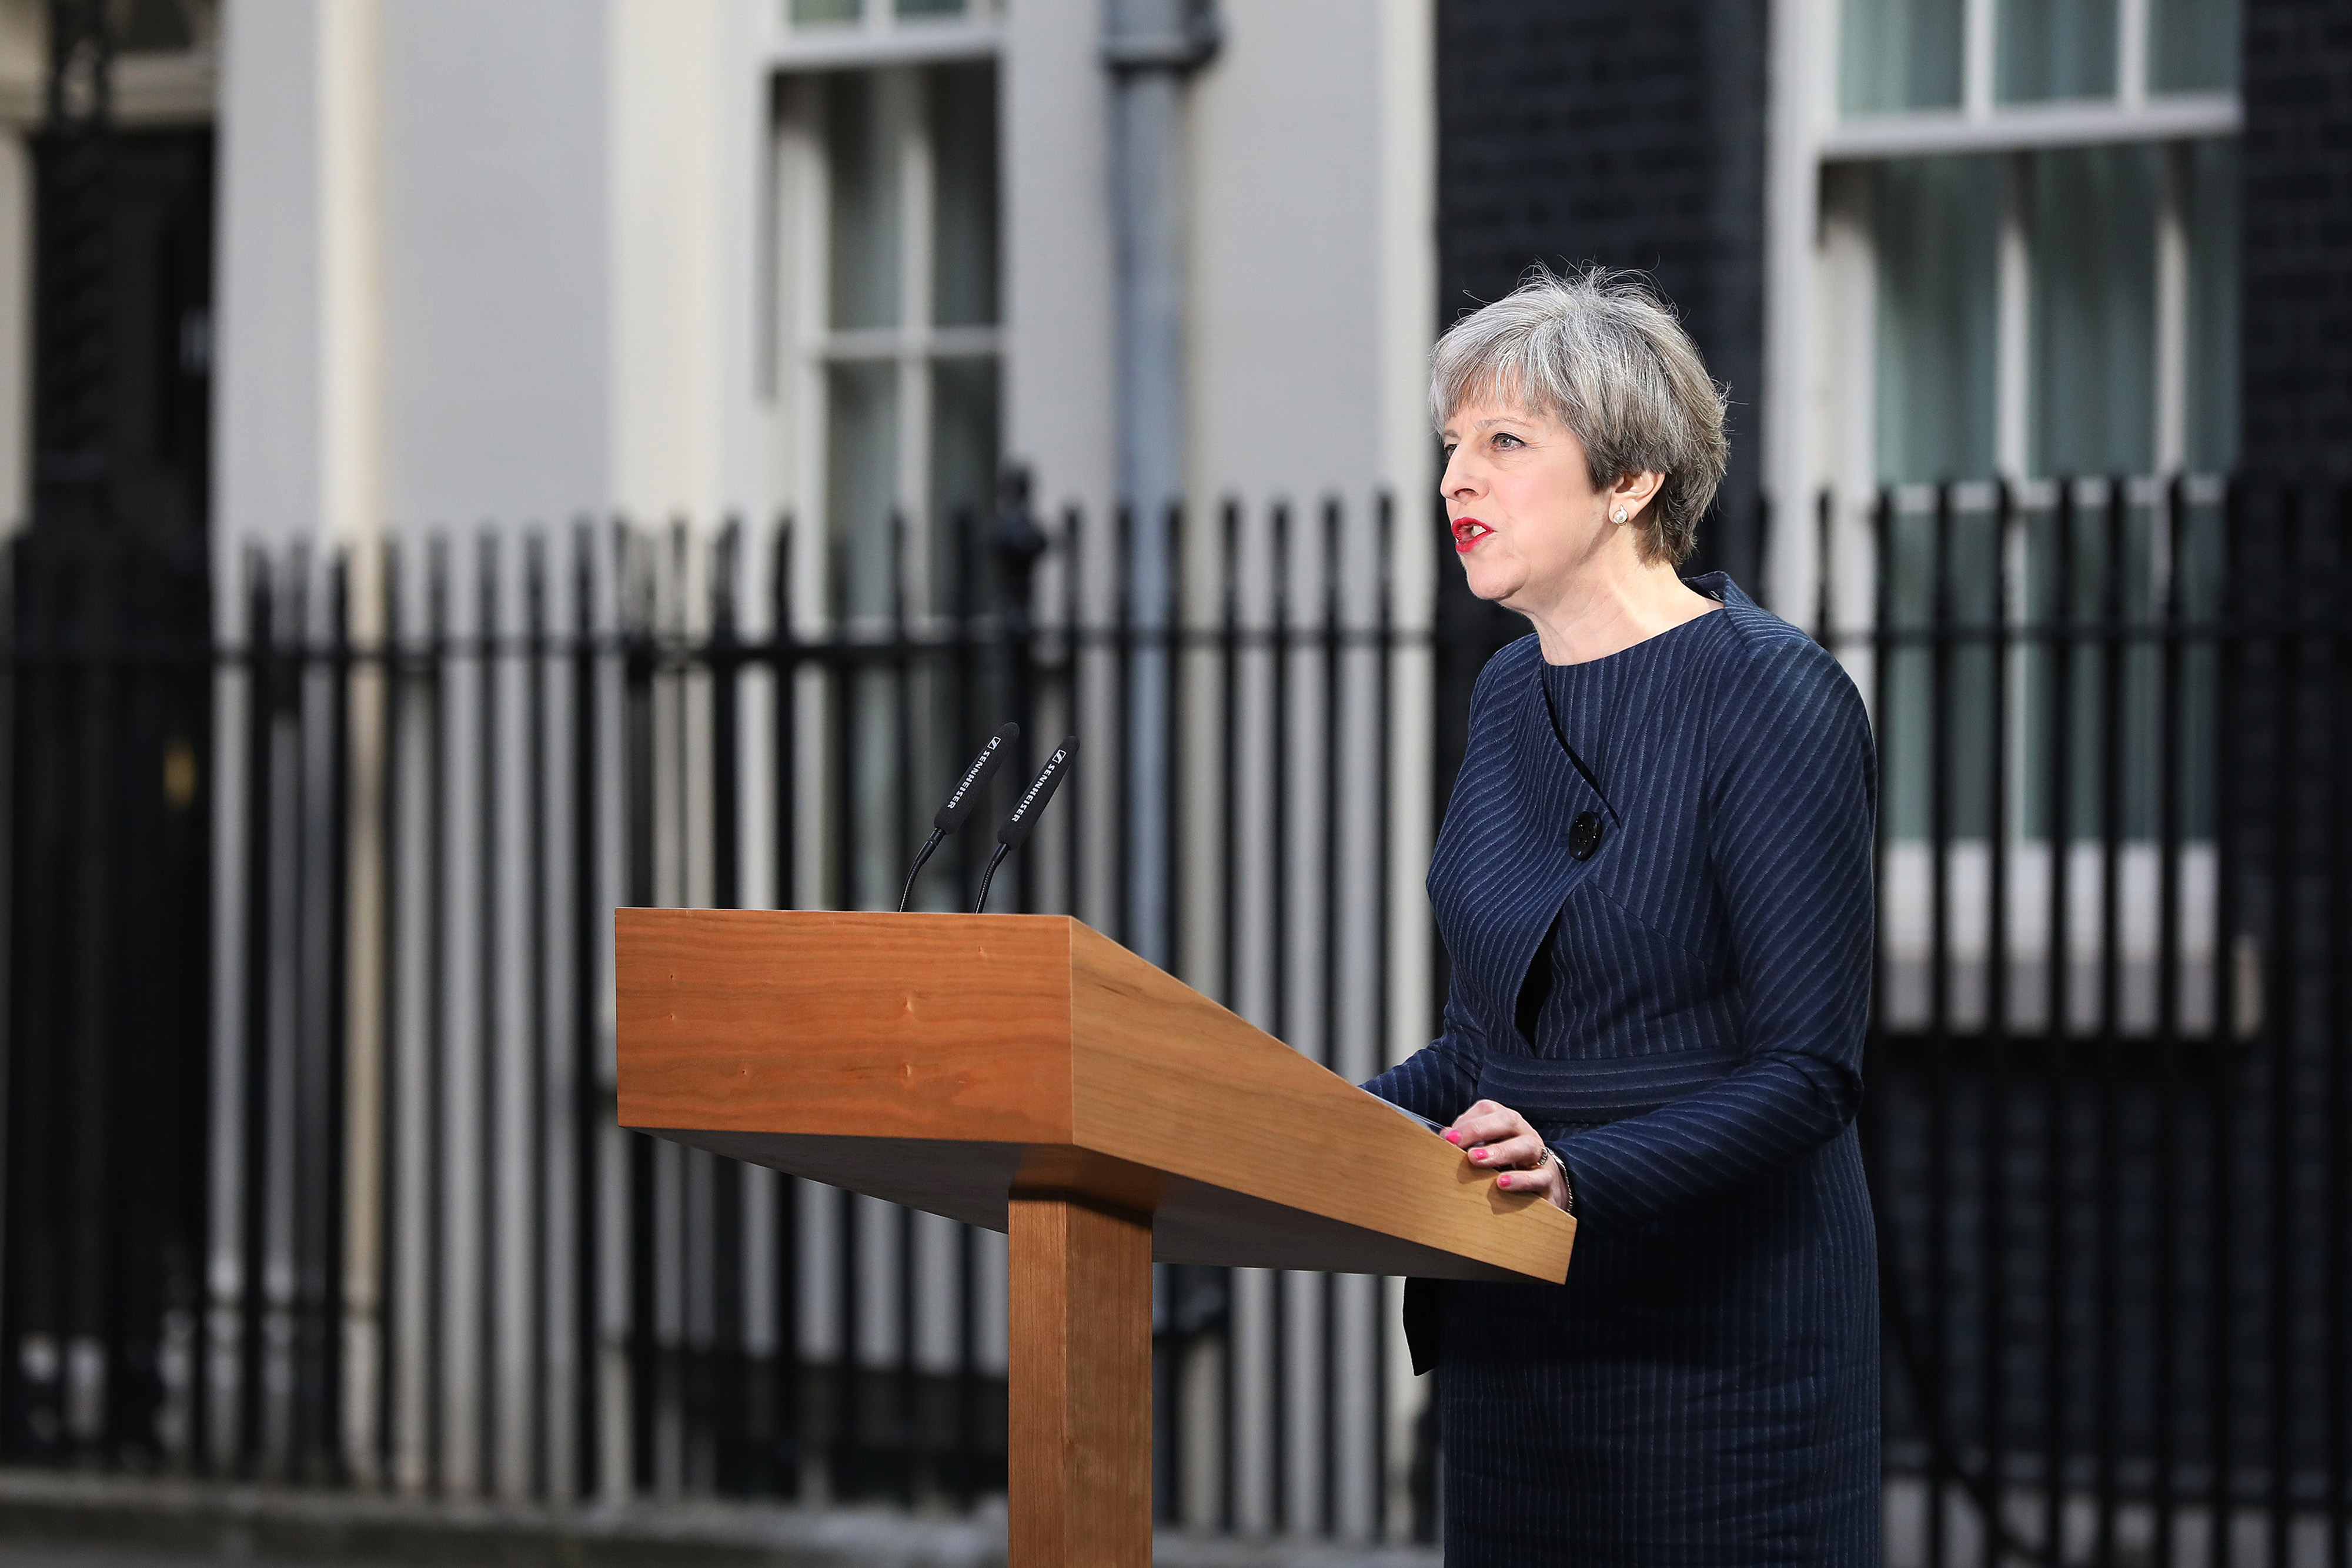 Theresa May, U.K. prime minister, announces a general election outside 10 Downing Street in London, U.K., on Tuesday, April 18, 2017.